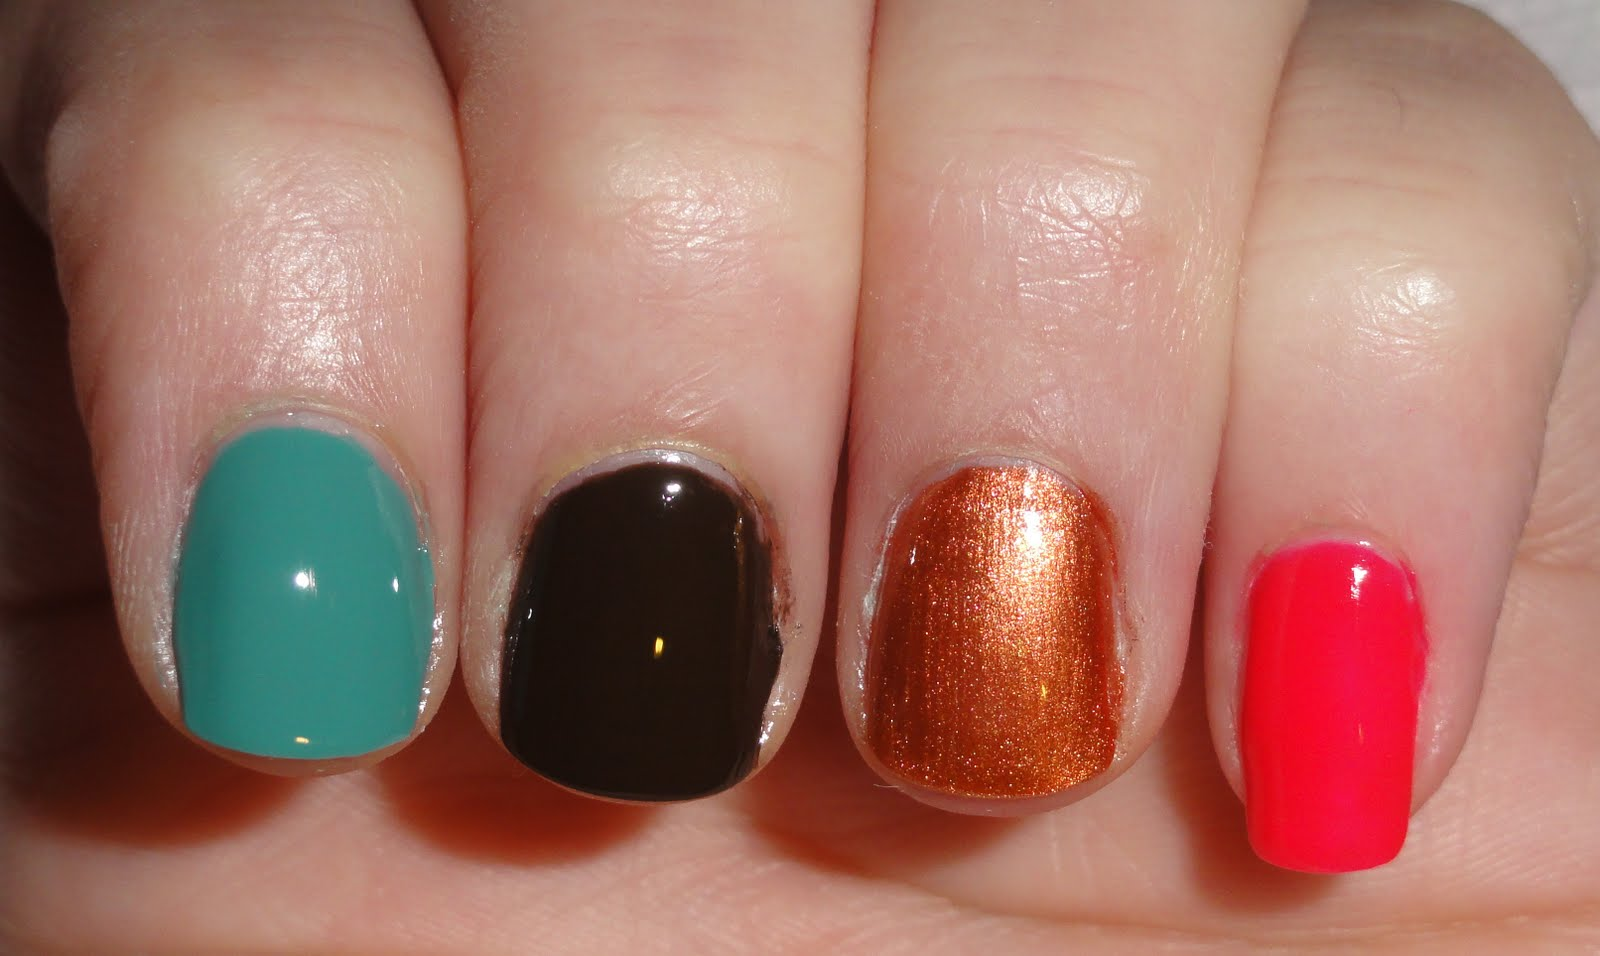 Julep August 2015 Swatches Comparisons And Nail Art: Crystallized Nail Art: My First Julep Maven Swatches